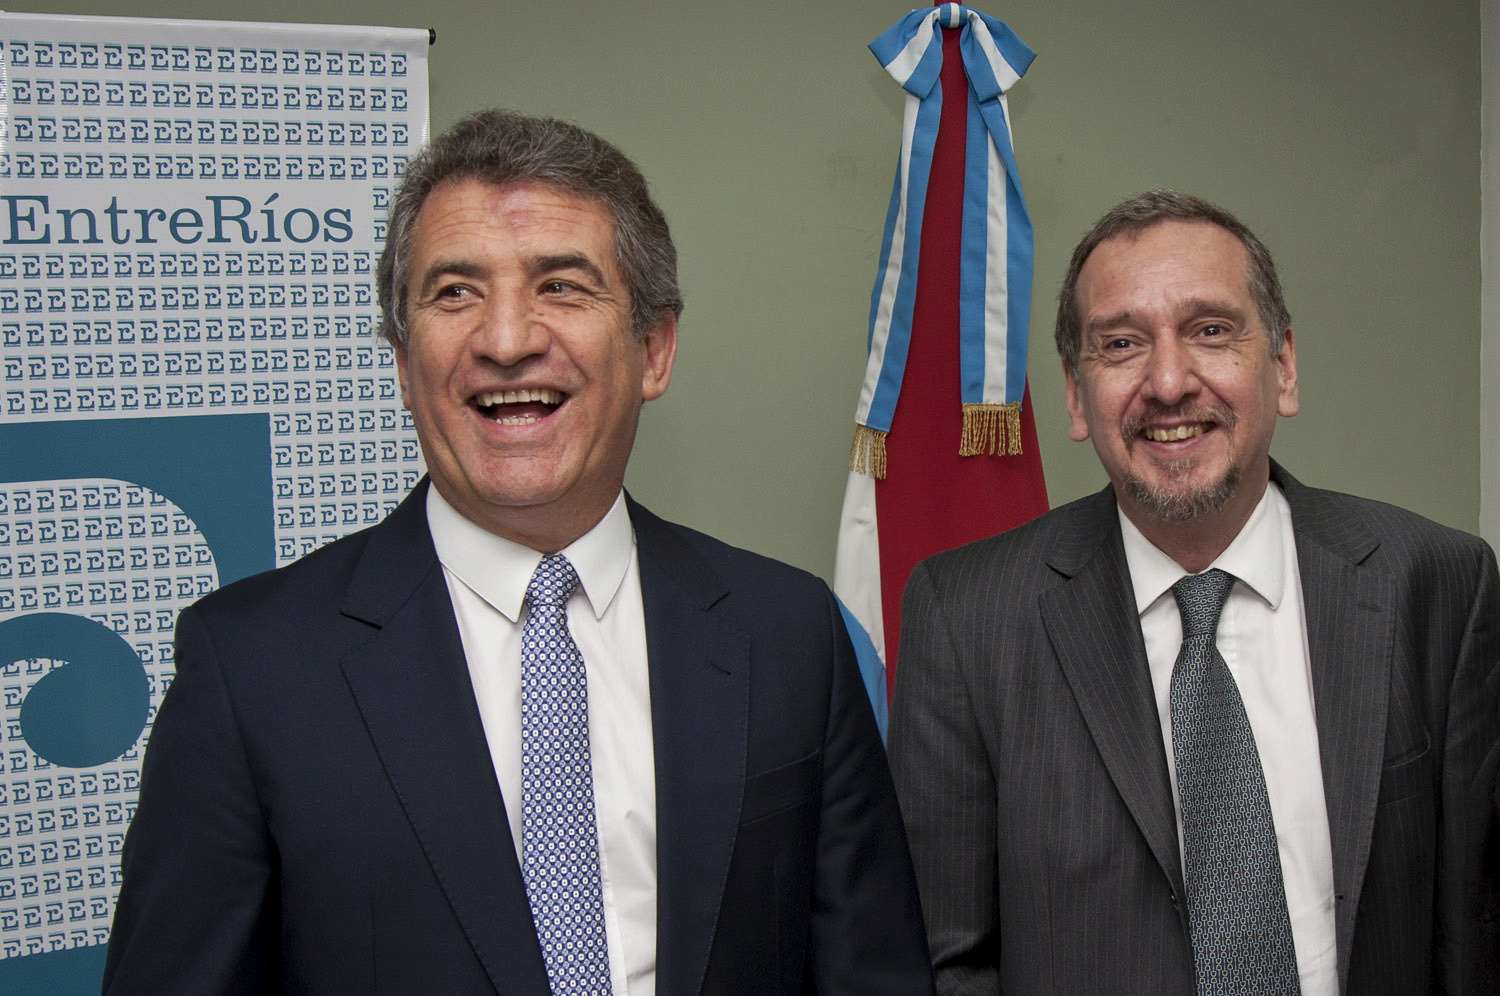 Barañao received the Salta Education Minister